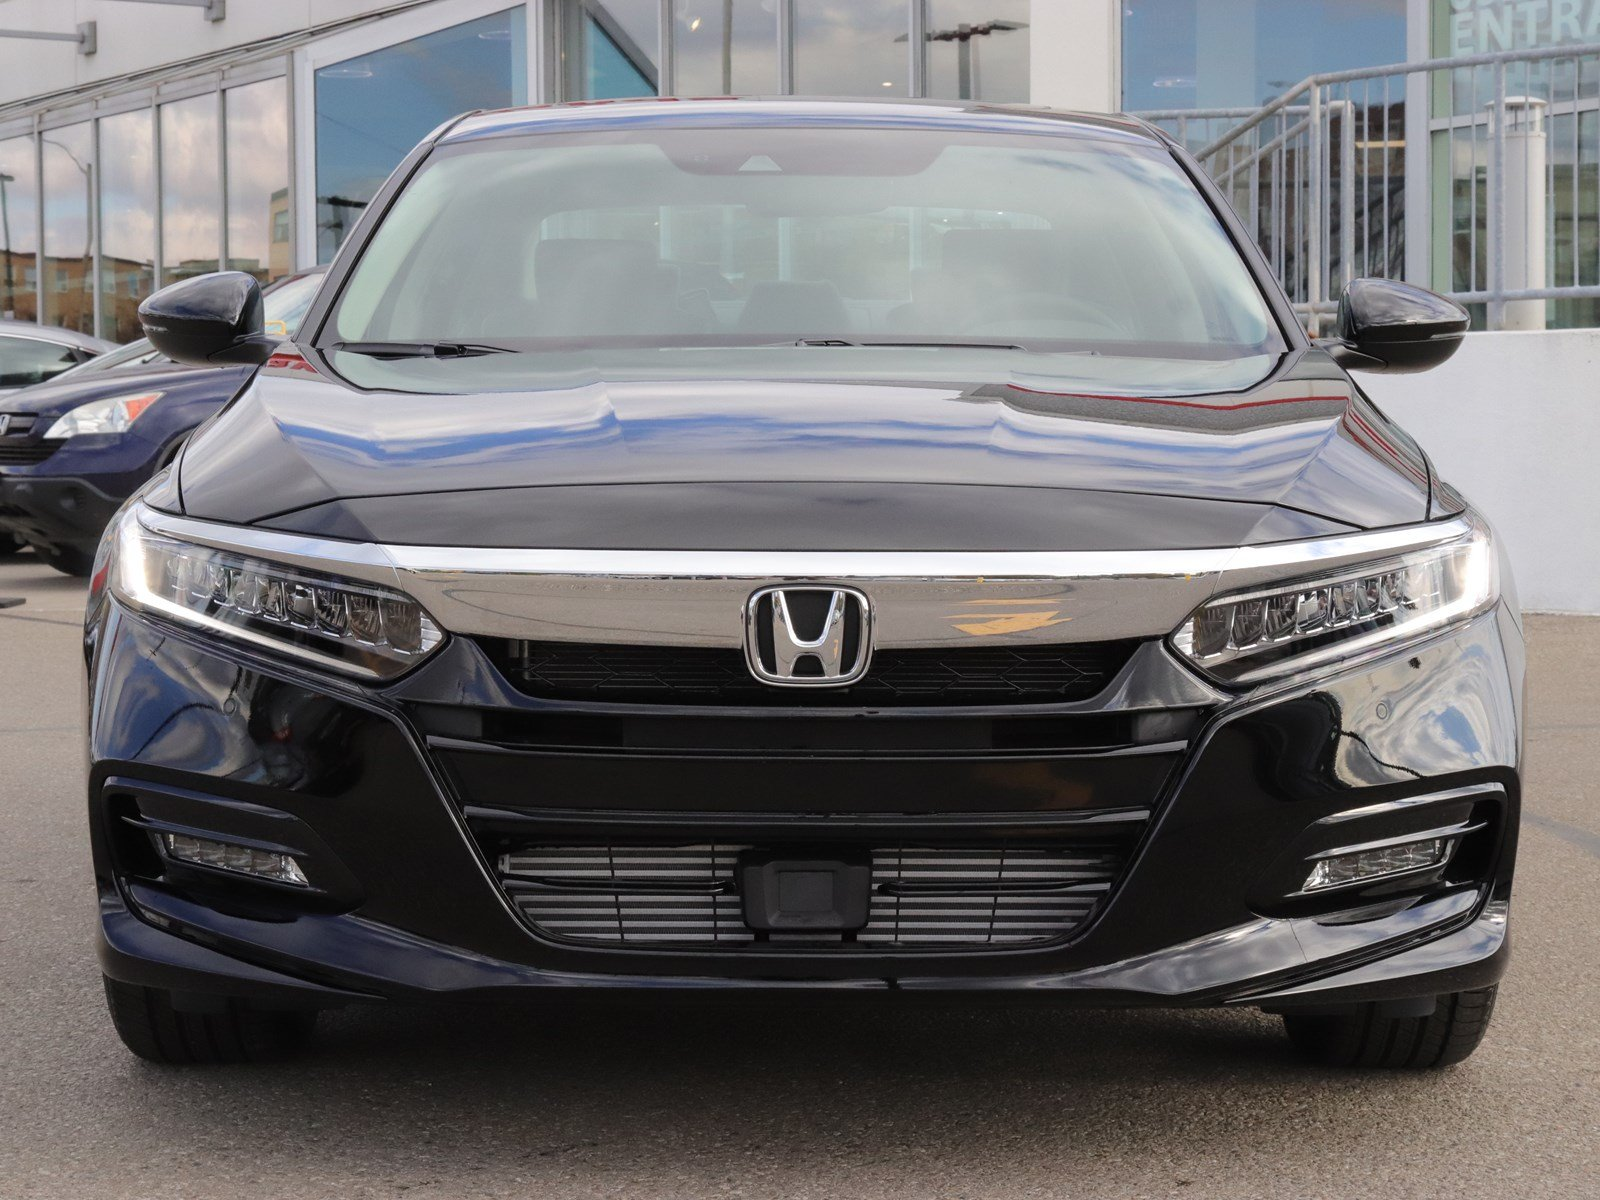 New 2018 Honda Accord Sedan Touring Demo Driven by Manager 4dr